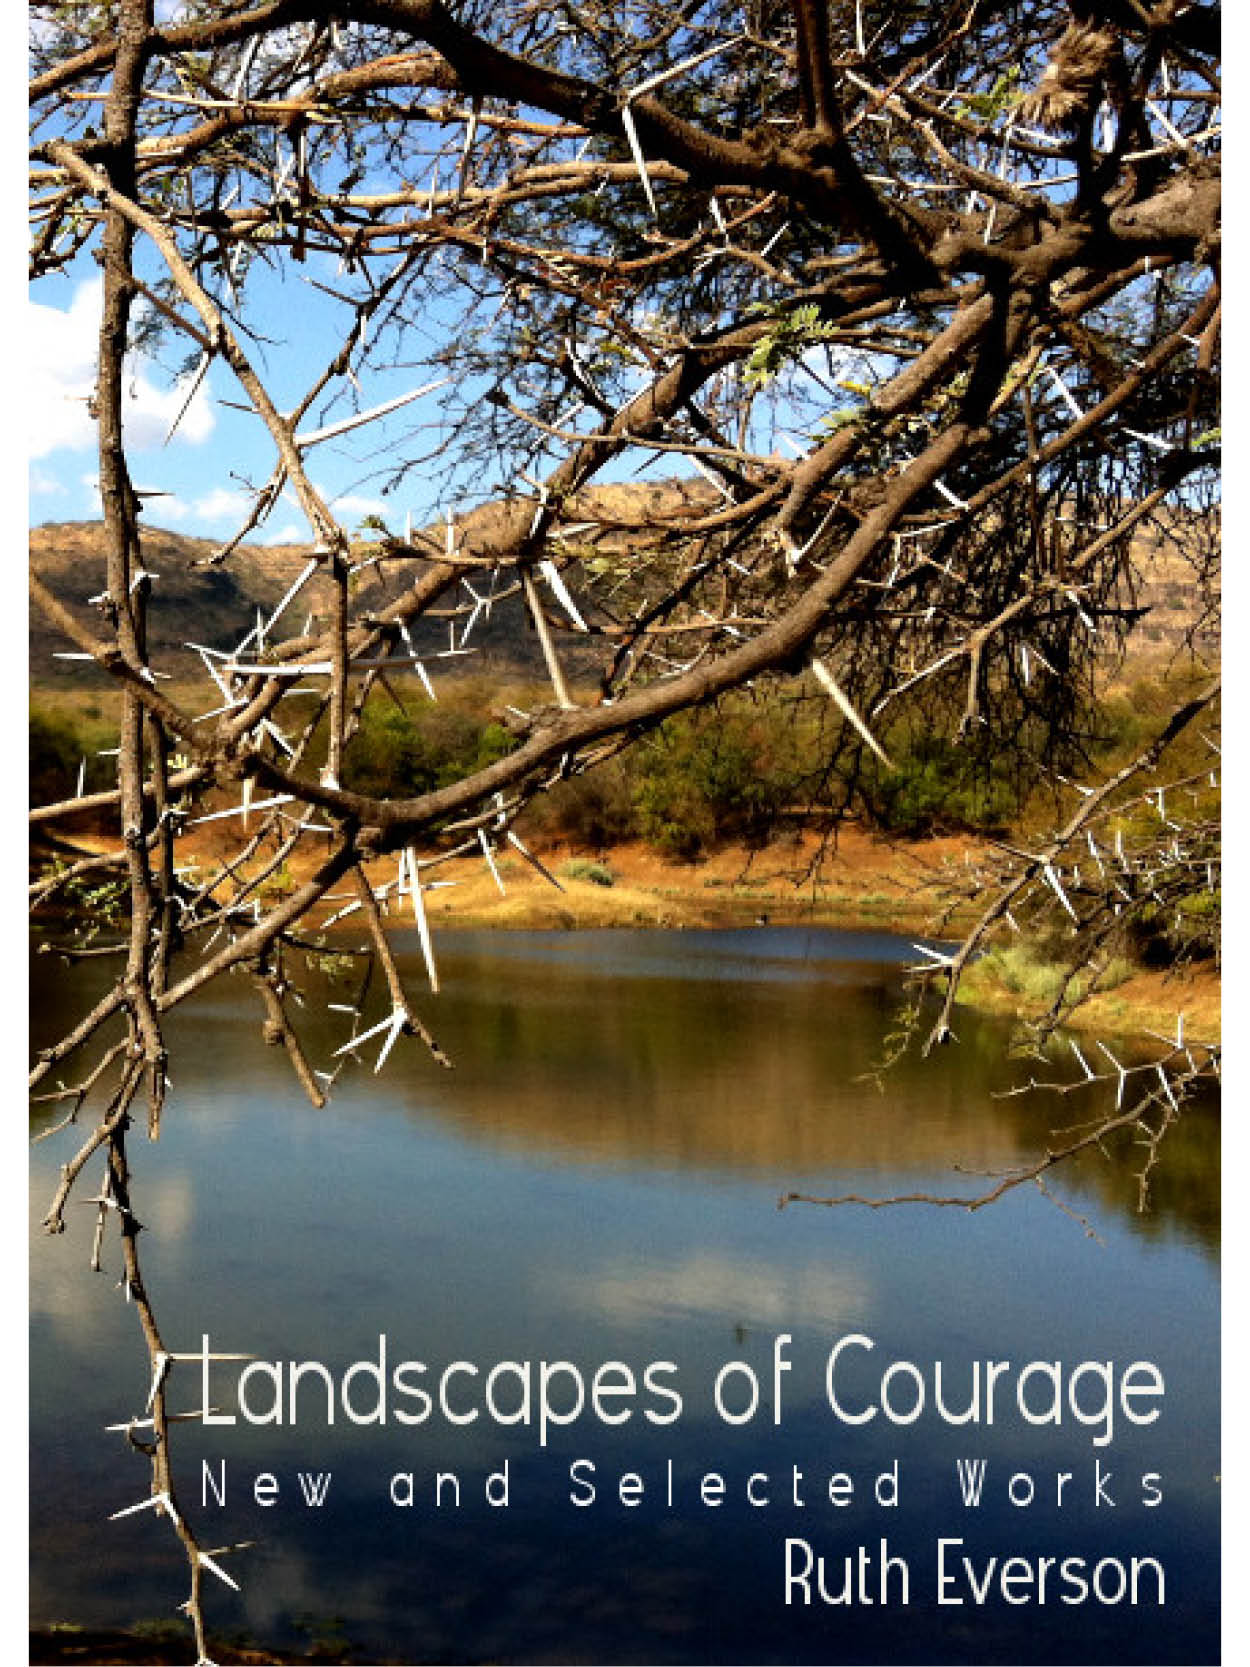 Cover of Landscapes of Courage by Ruth Everson